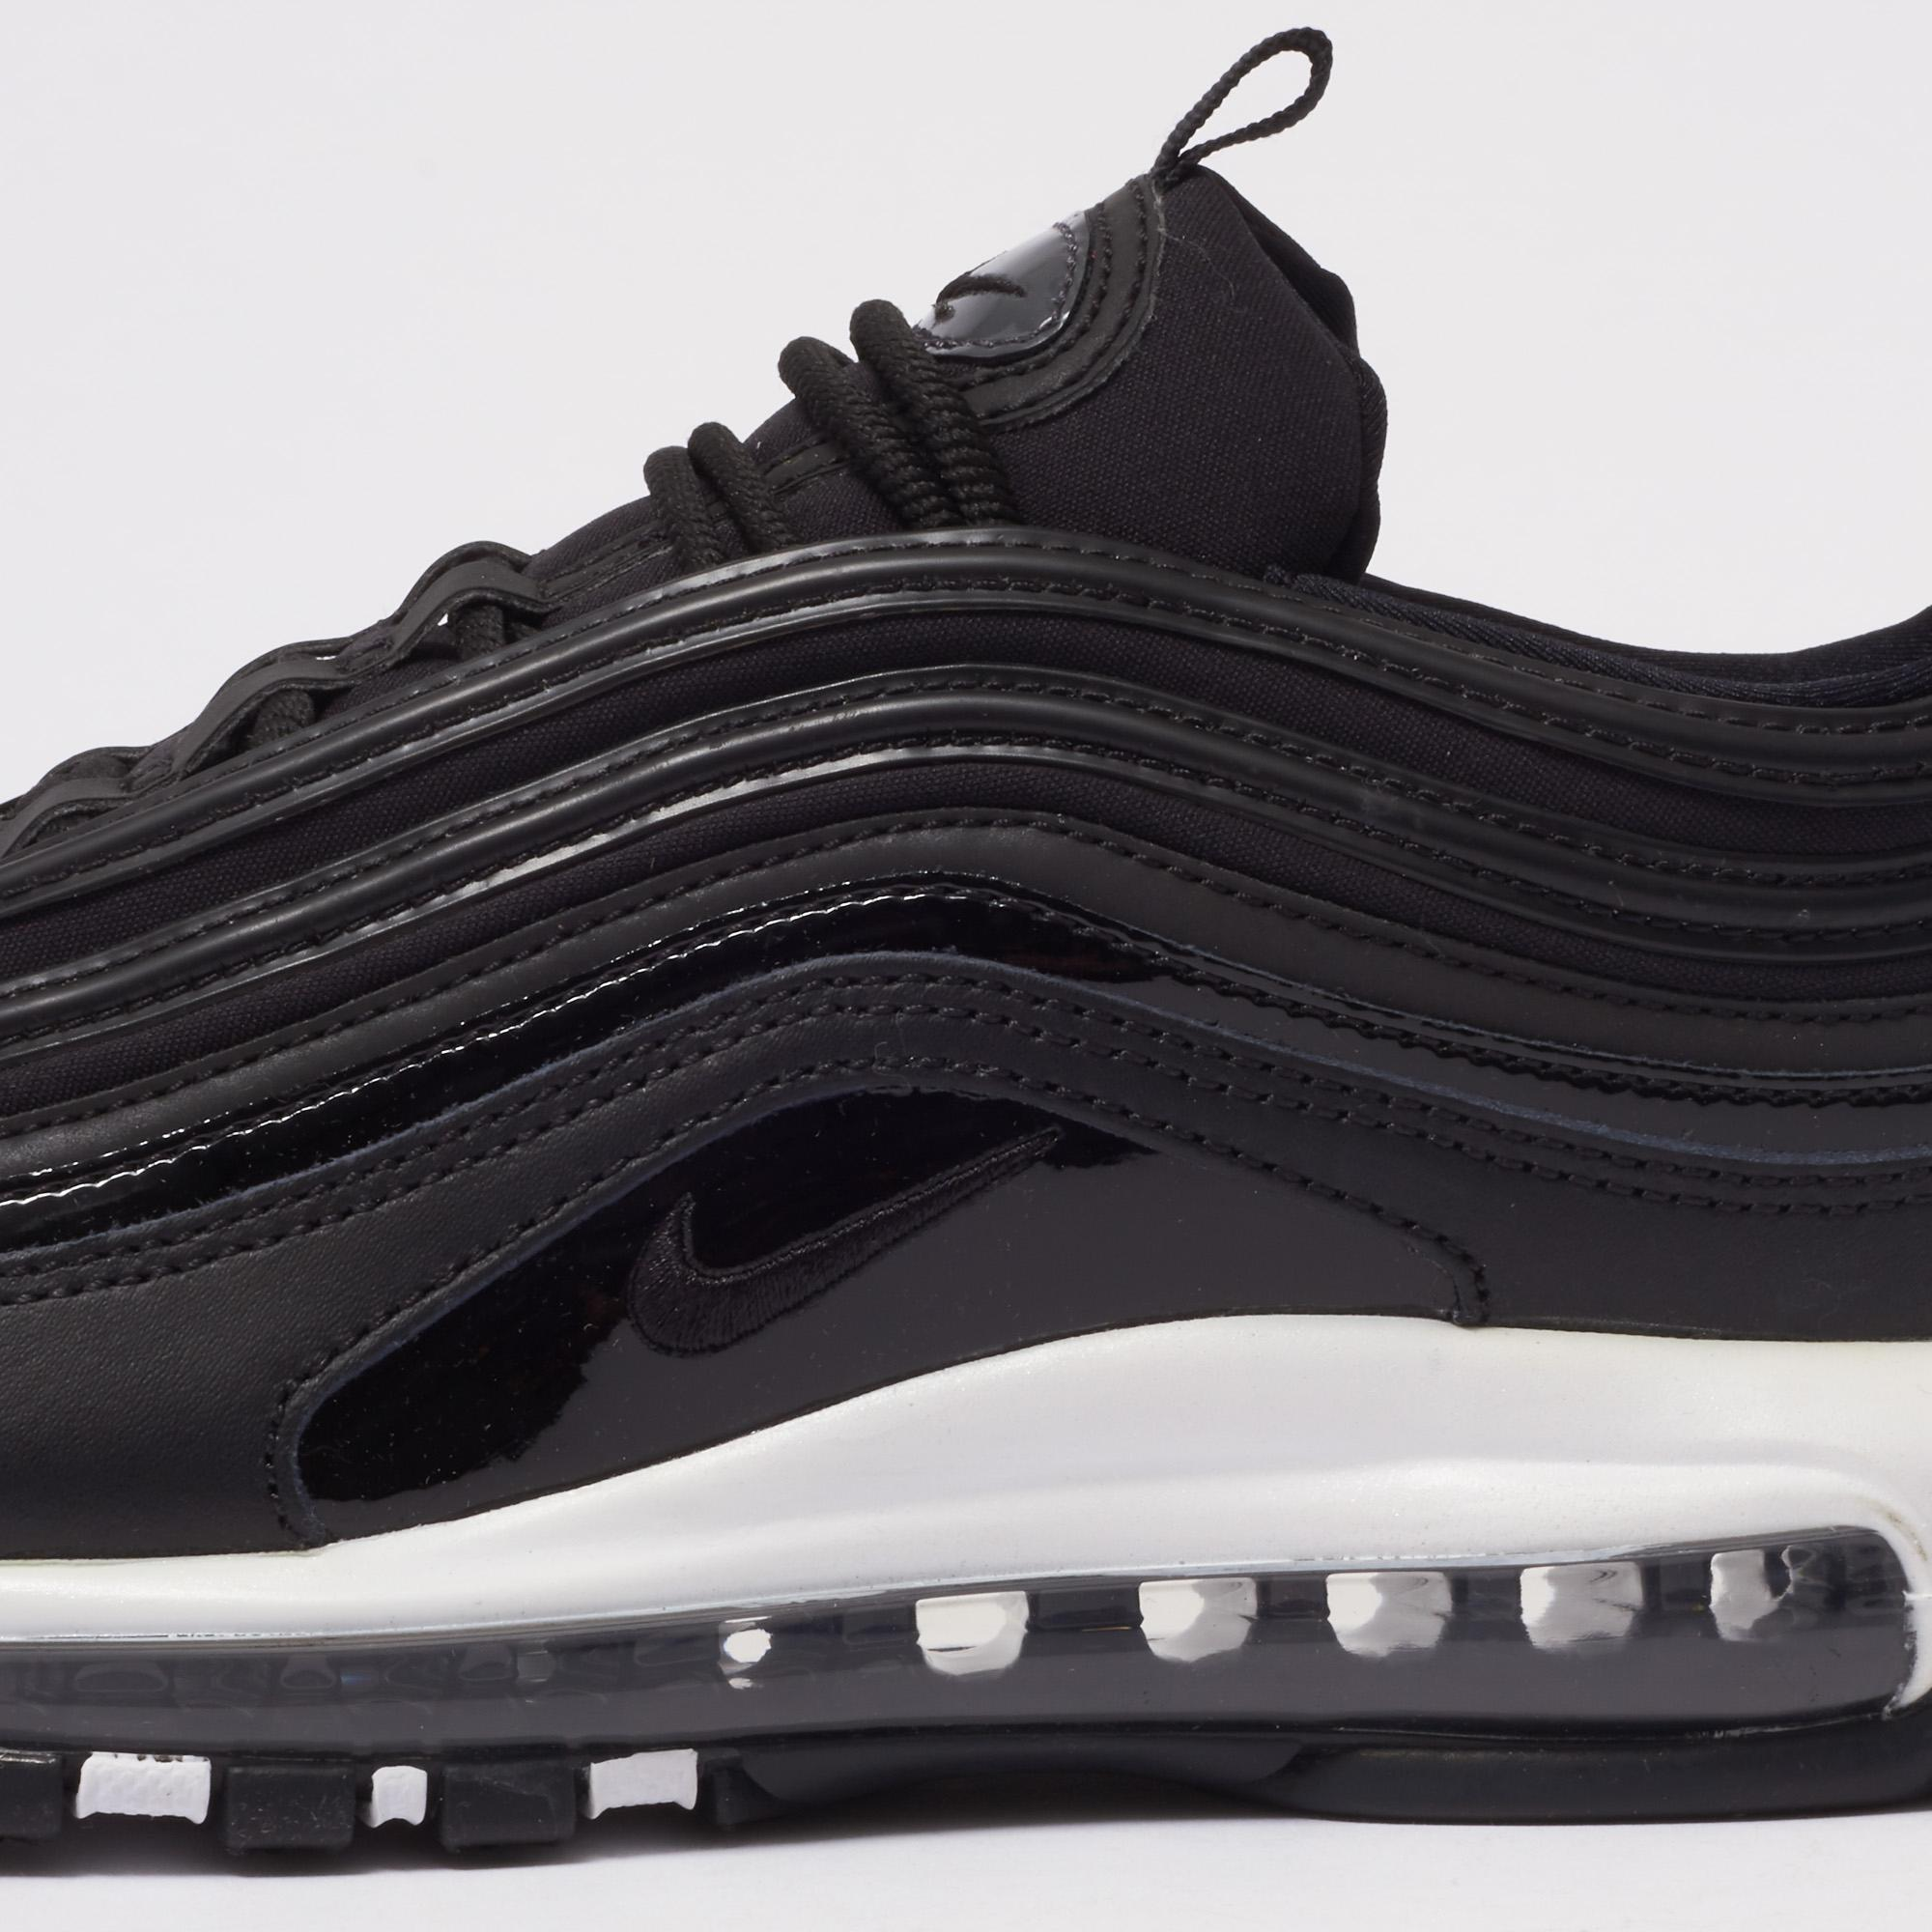 lowest price 204e5 c7d86 Lyst - Nike Air Max 97 - Black Anthracite in Black for Men